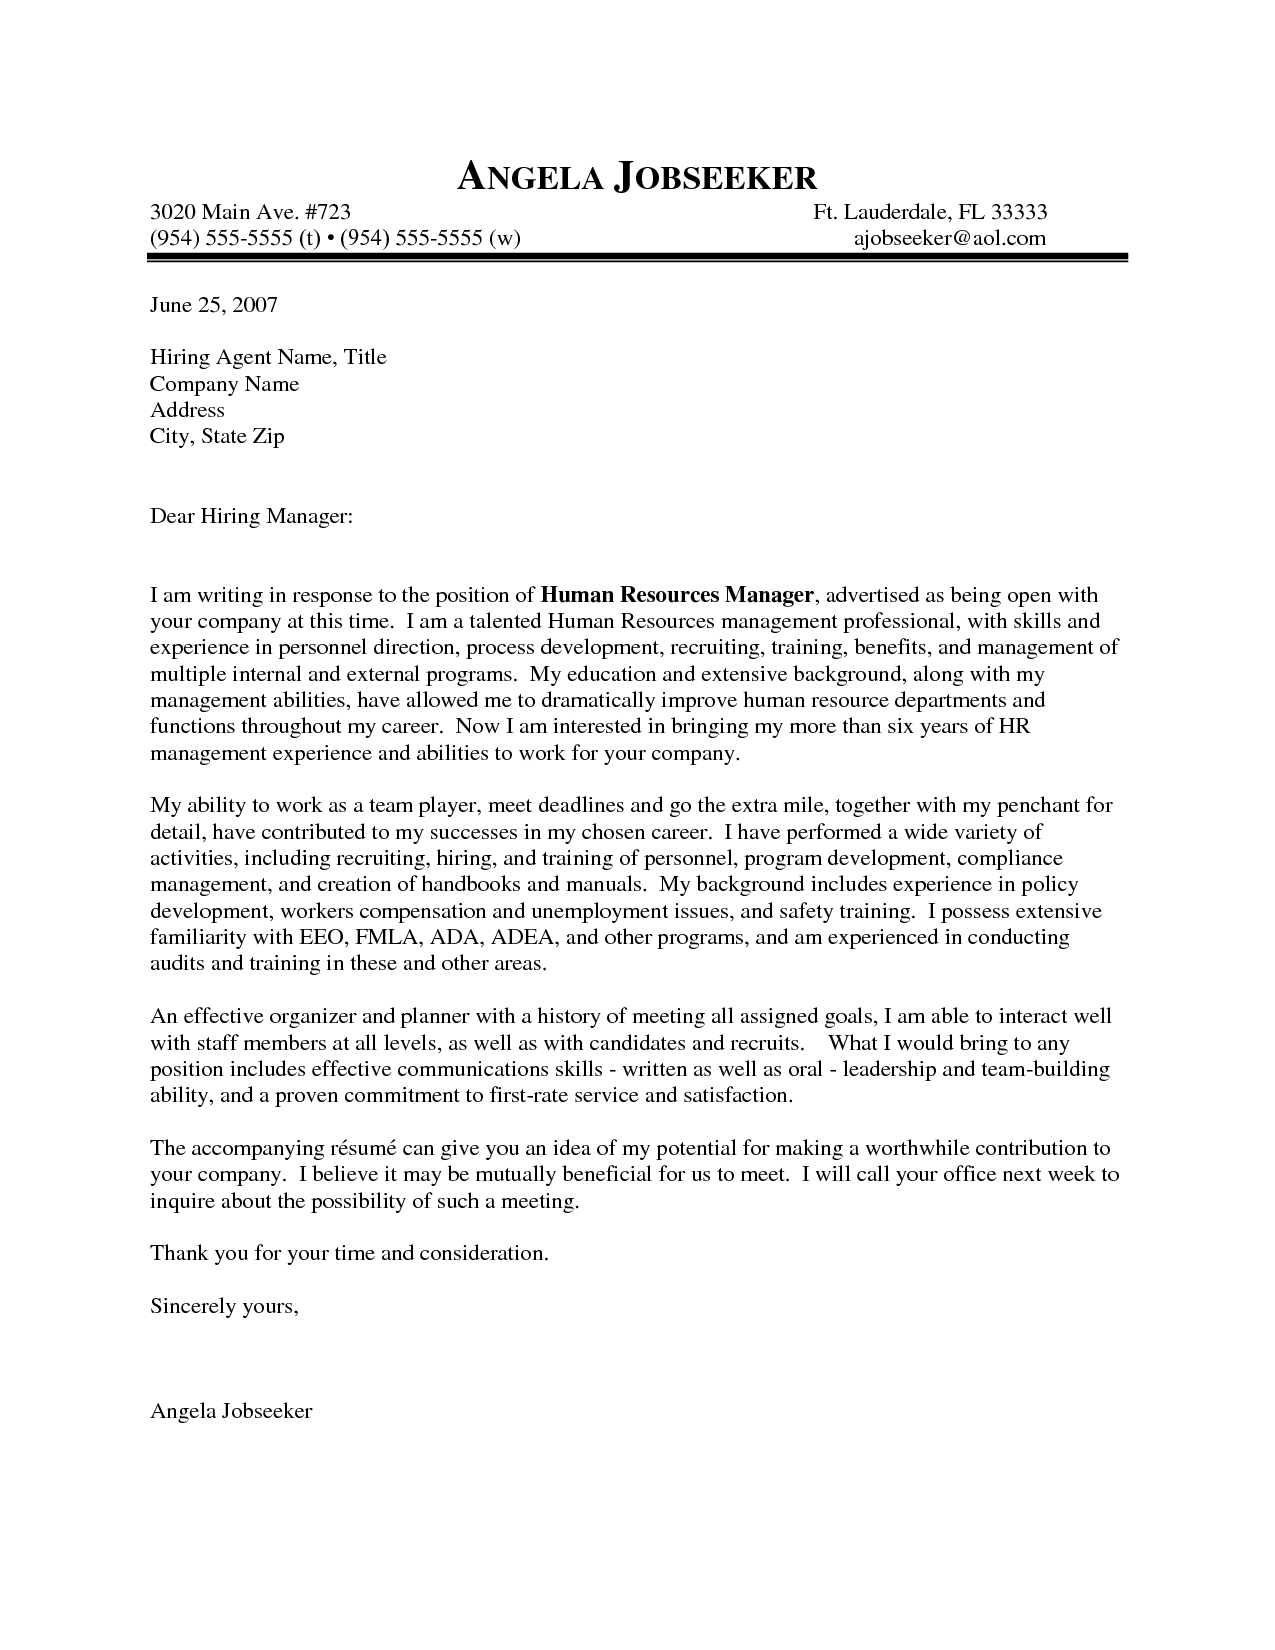 outstanding cover letter examples hr manager cover letter example - Management Consulting Cover Letter Samples